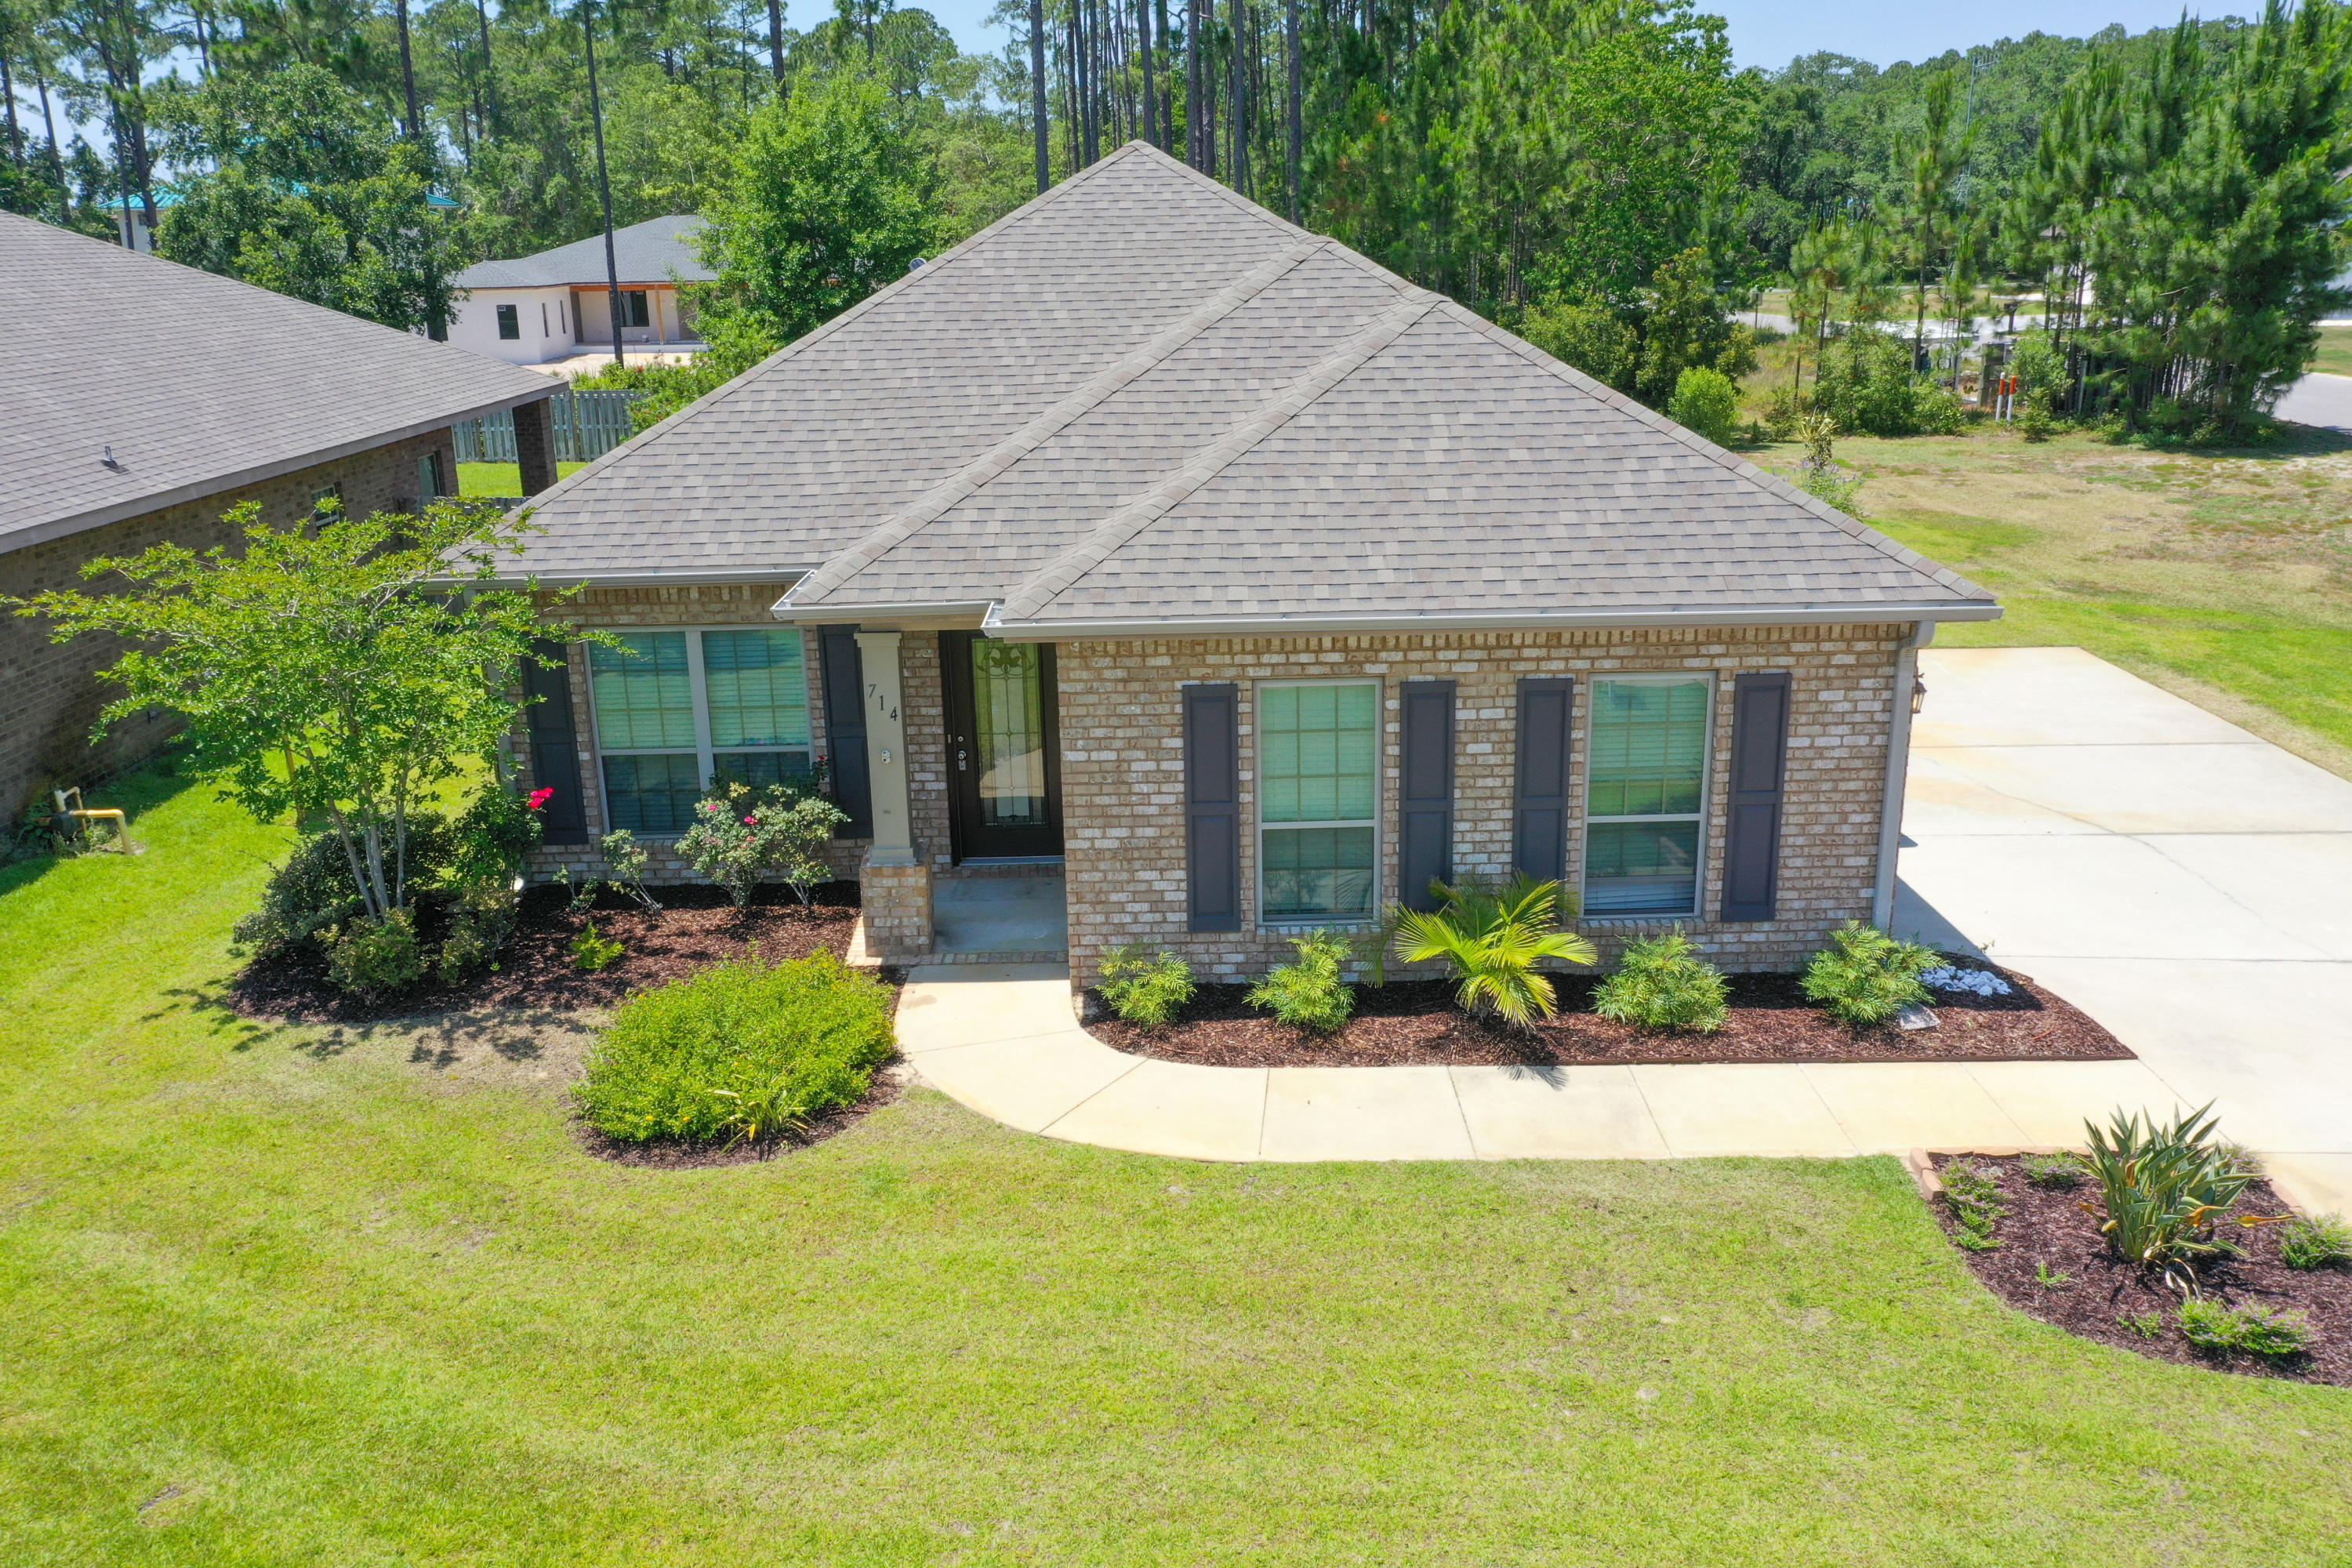 This brick ranch offers 1736 sq ft of well appointed living space.  Stainless steel appliances, engineered hardwood floors, screened in porch, two car garage, granite countertops in kitchen and both bathrooms, tile kitchen floor, separate dining room with large window, home security system, walk in closet in master bath, garden tub, walk in shower and large corner lot all within walking distance to the community pool, playground and several catch and release fishing ponds.  In addition there is a super irrigation system, ceiling fans, beautiful stained-glass front door, gutters on front and back, termite protection pods around the whole house and an attractive black wrought iron fence all around the back yard (nice for pets).  See documents for list of seller planted trees and bushes.